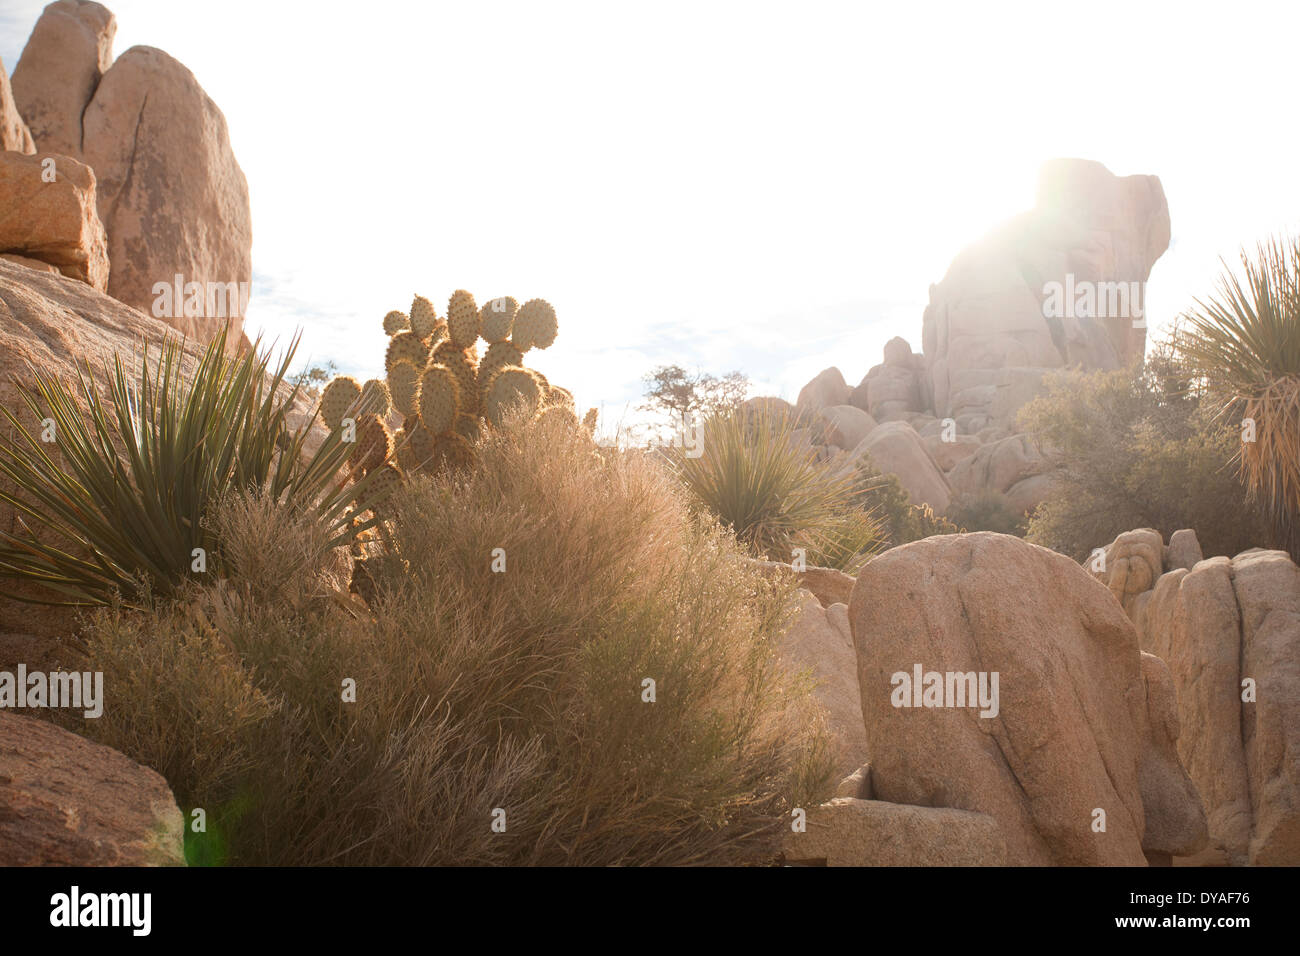 Vegetation found in Joshua Tree National Park, California - Stock Image